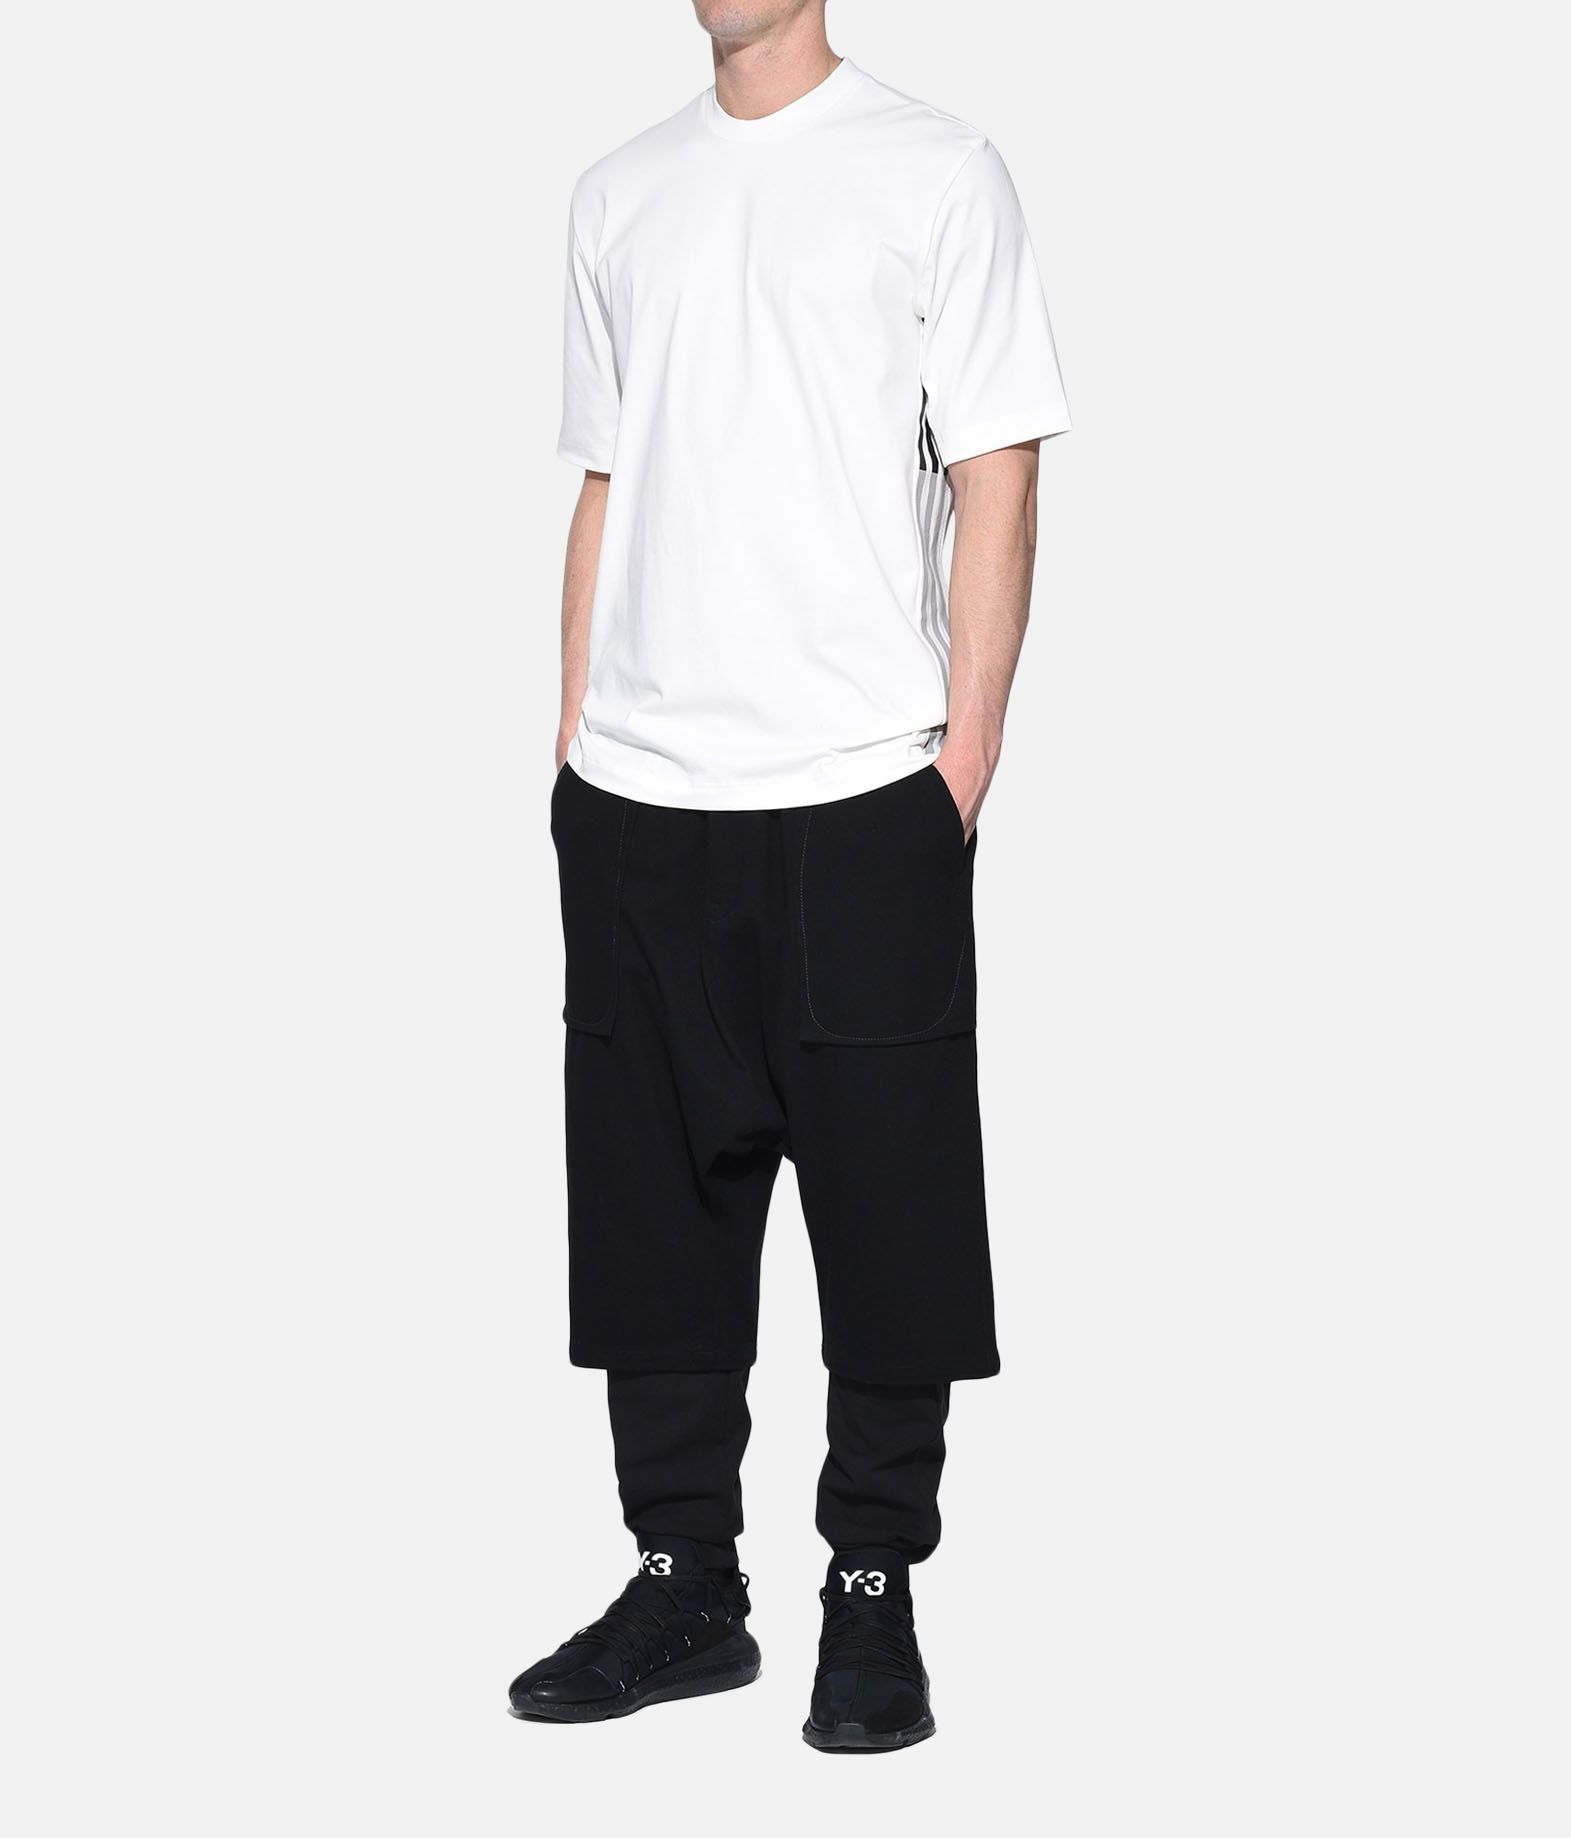 Y-3 Y-3 Sarouel Shorts Sweat shorts Man a